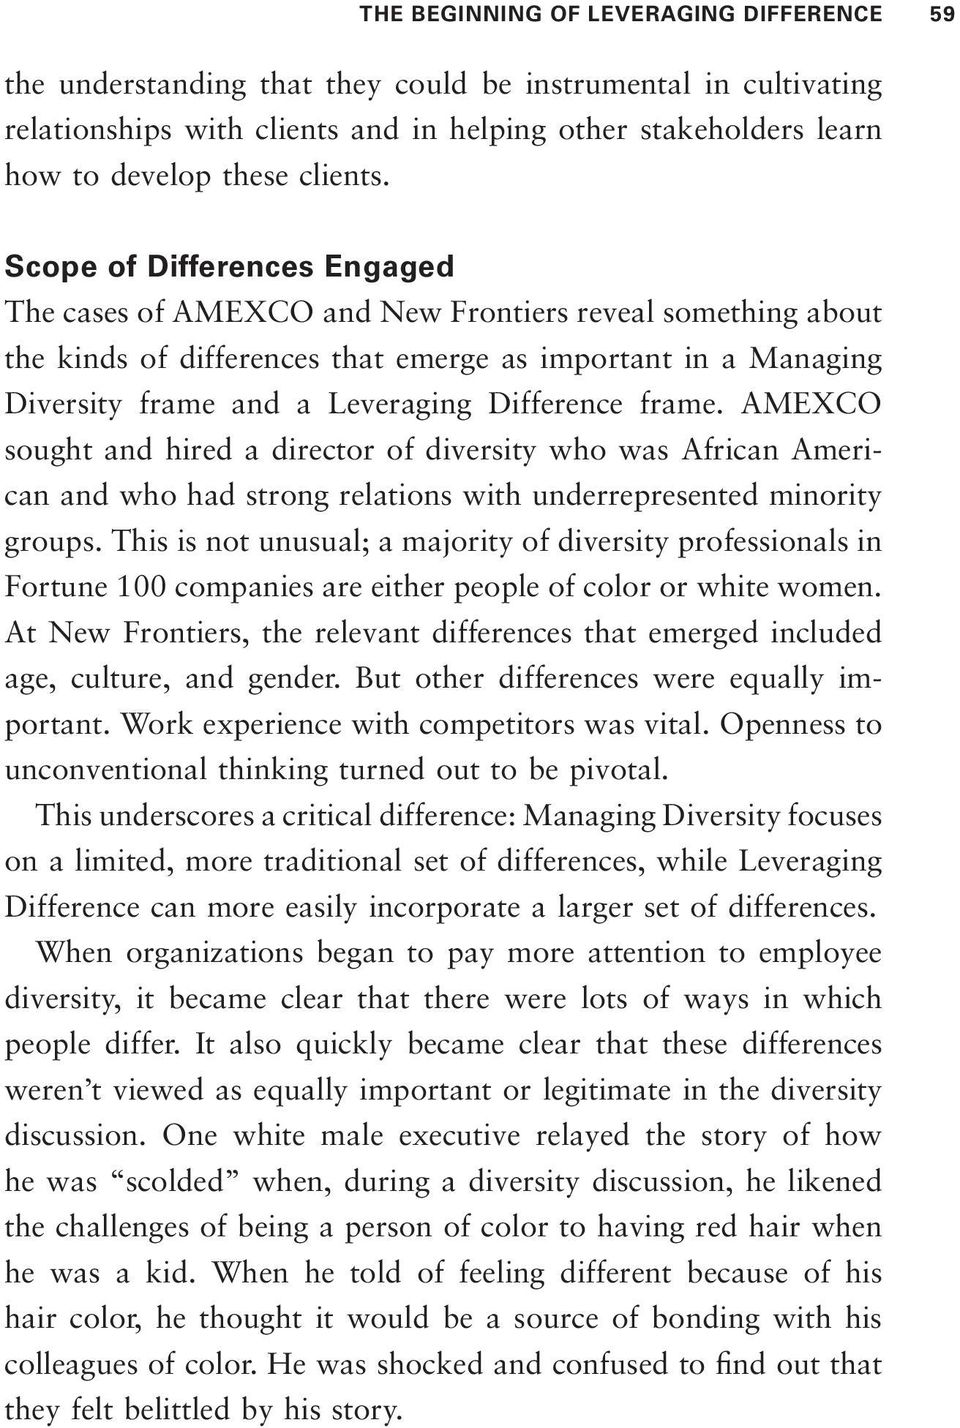 Scope of Differences Engaged The cases of AMEXCO and New Frontiers reveal something about the kinds of differences that emerge as important in a Managing Diversity frame and a Leveraging Difference